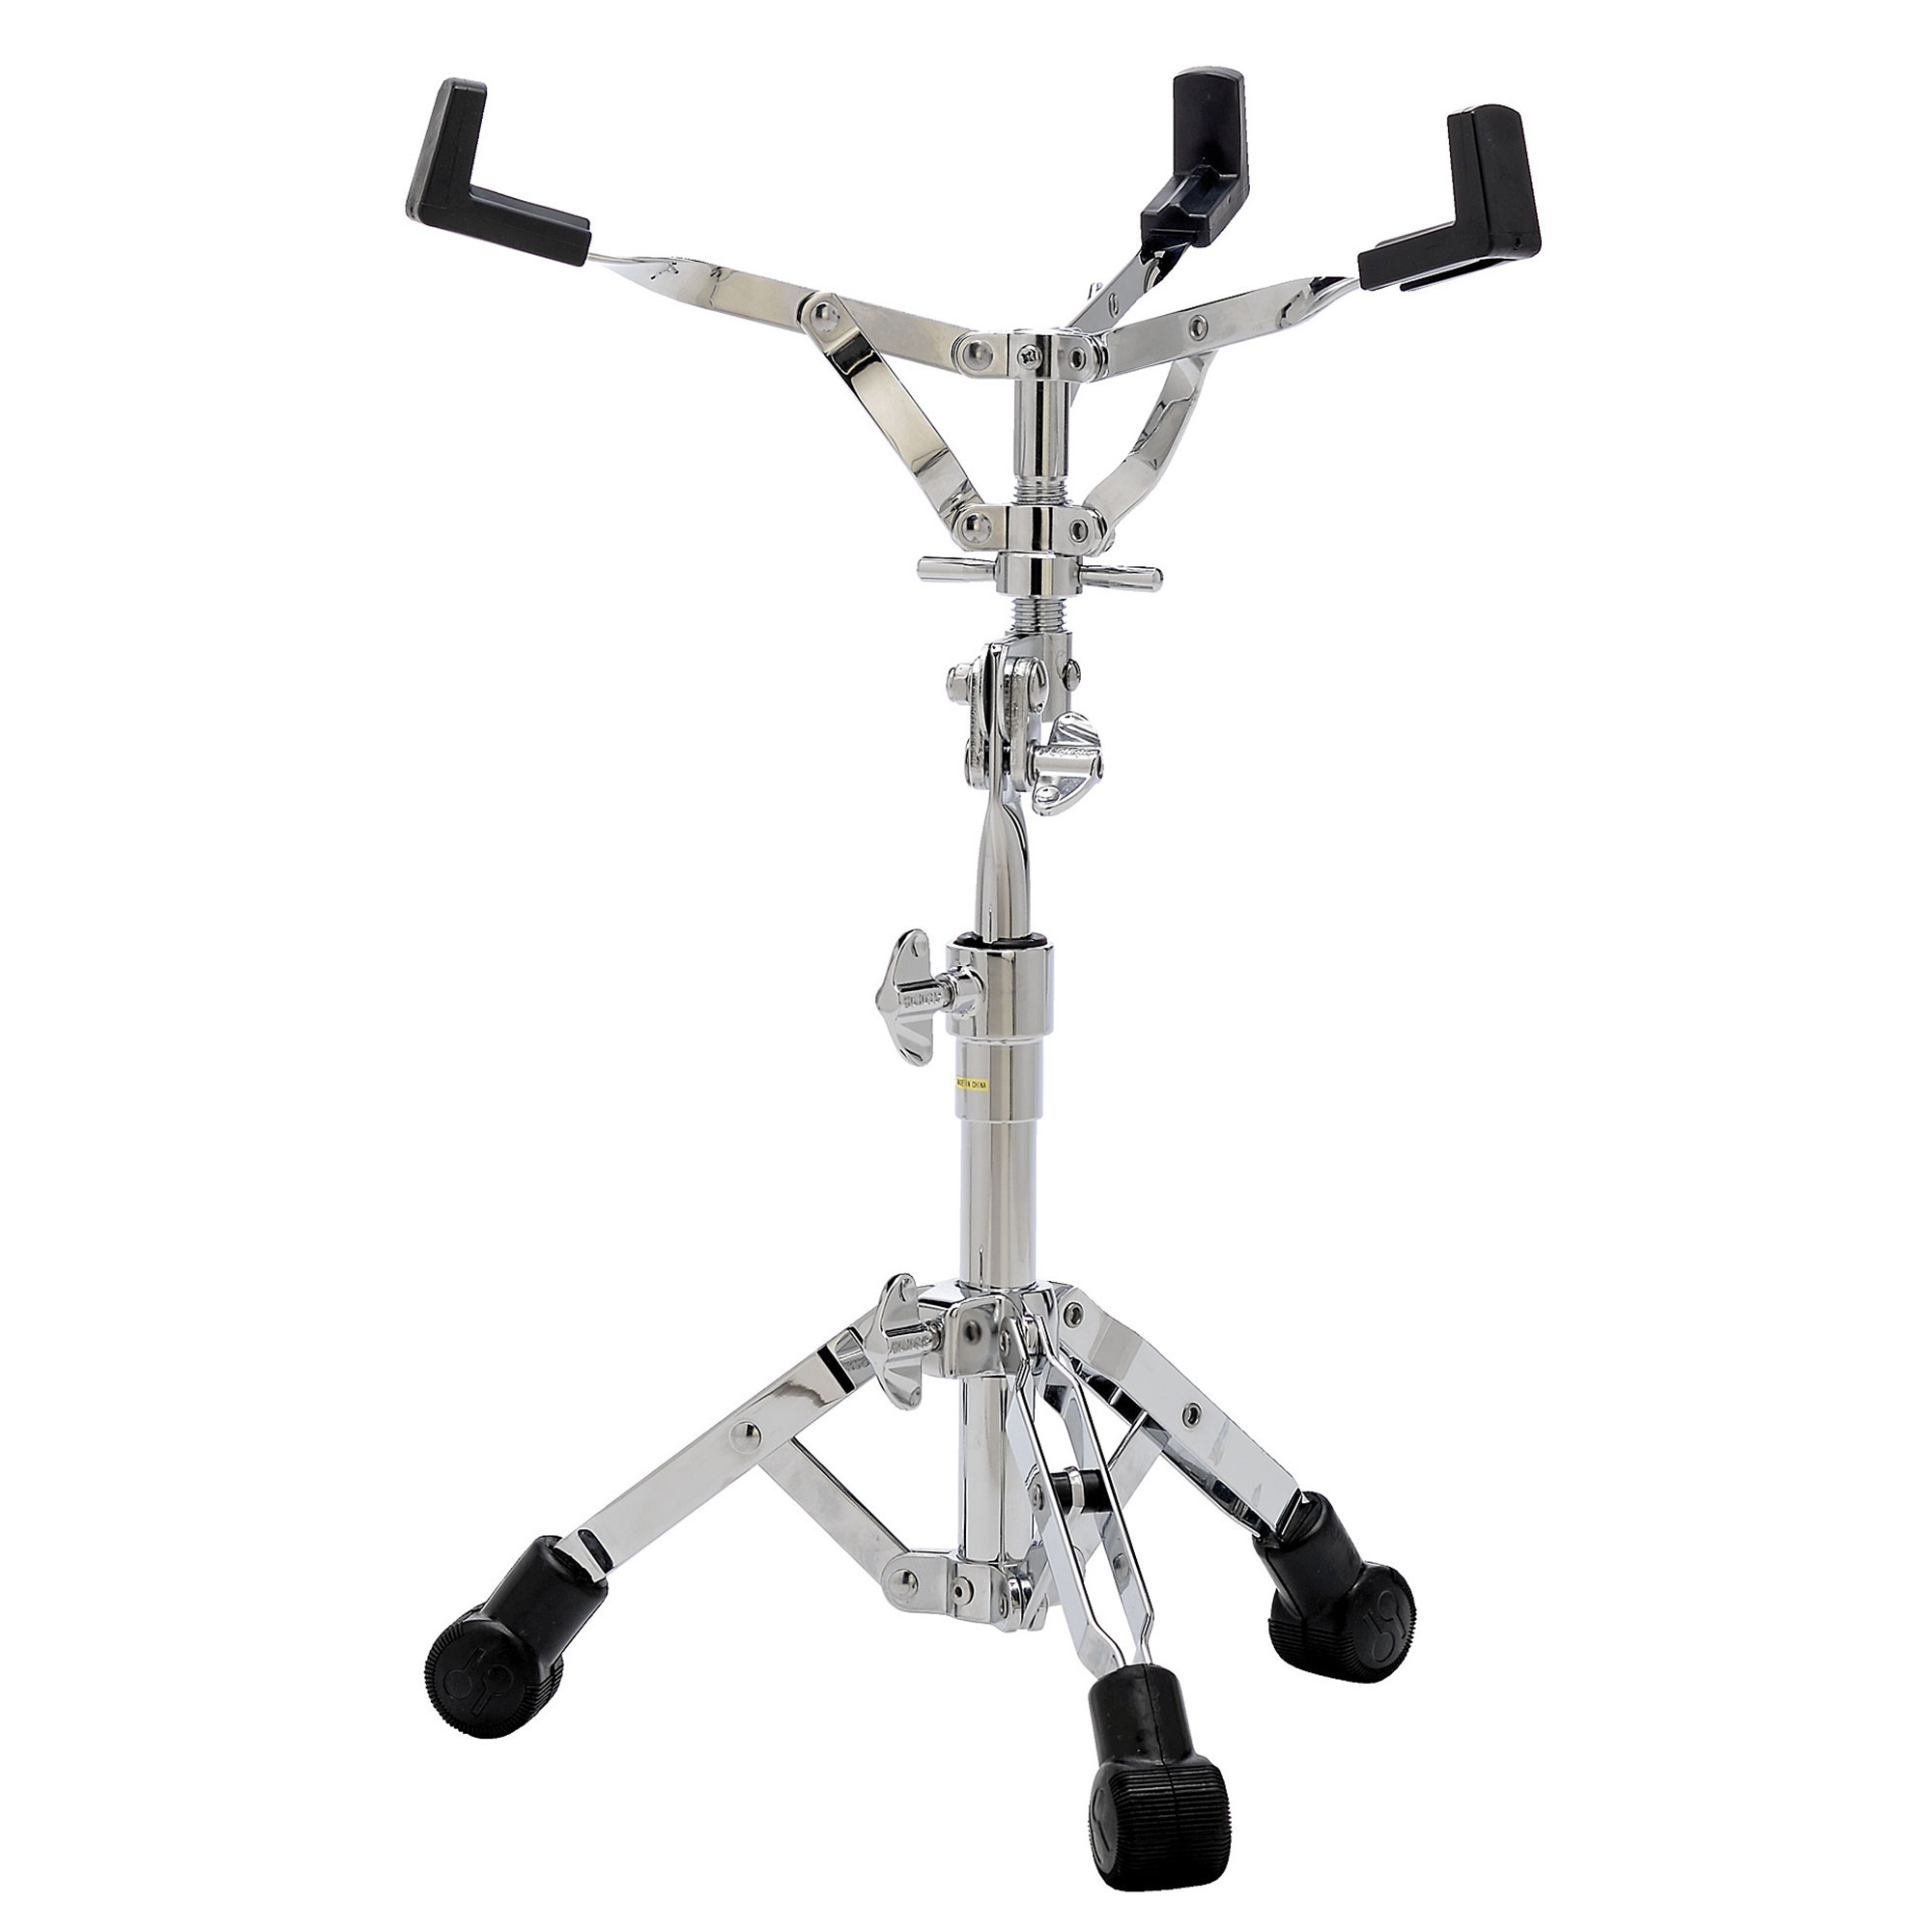 Sonor SS2000 Snare Drum Stand by Sonor